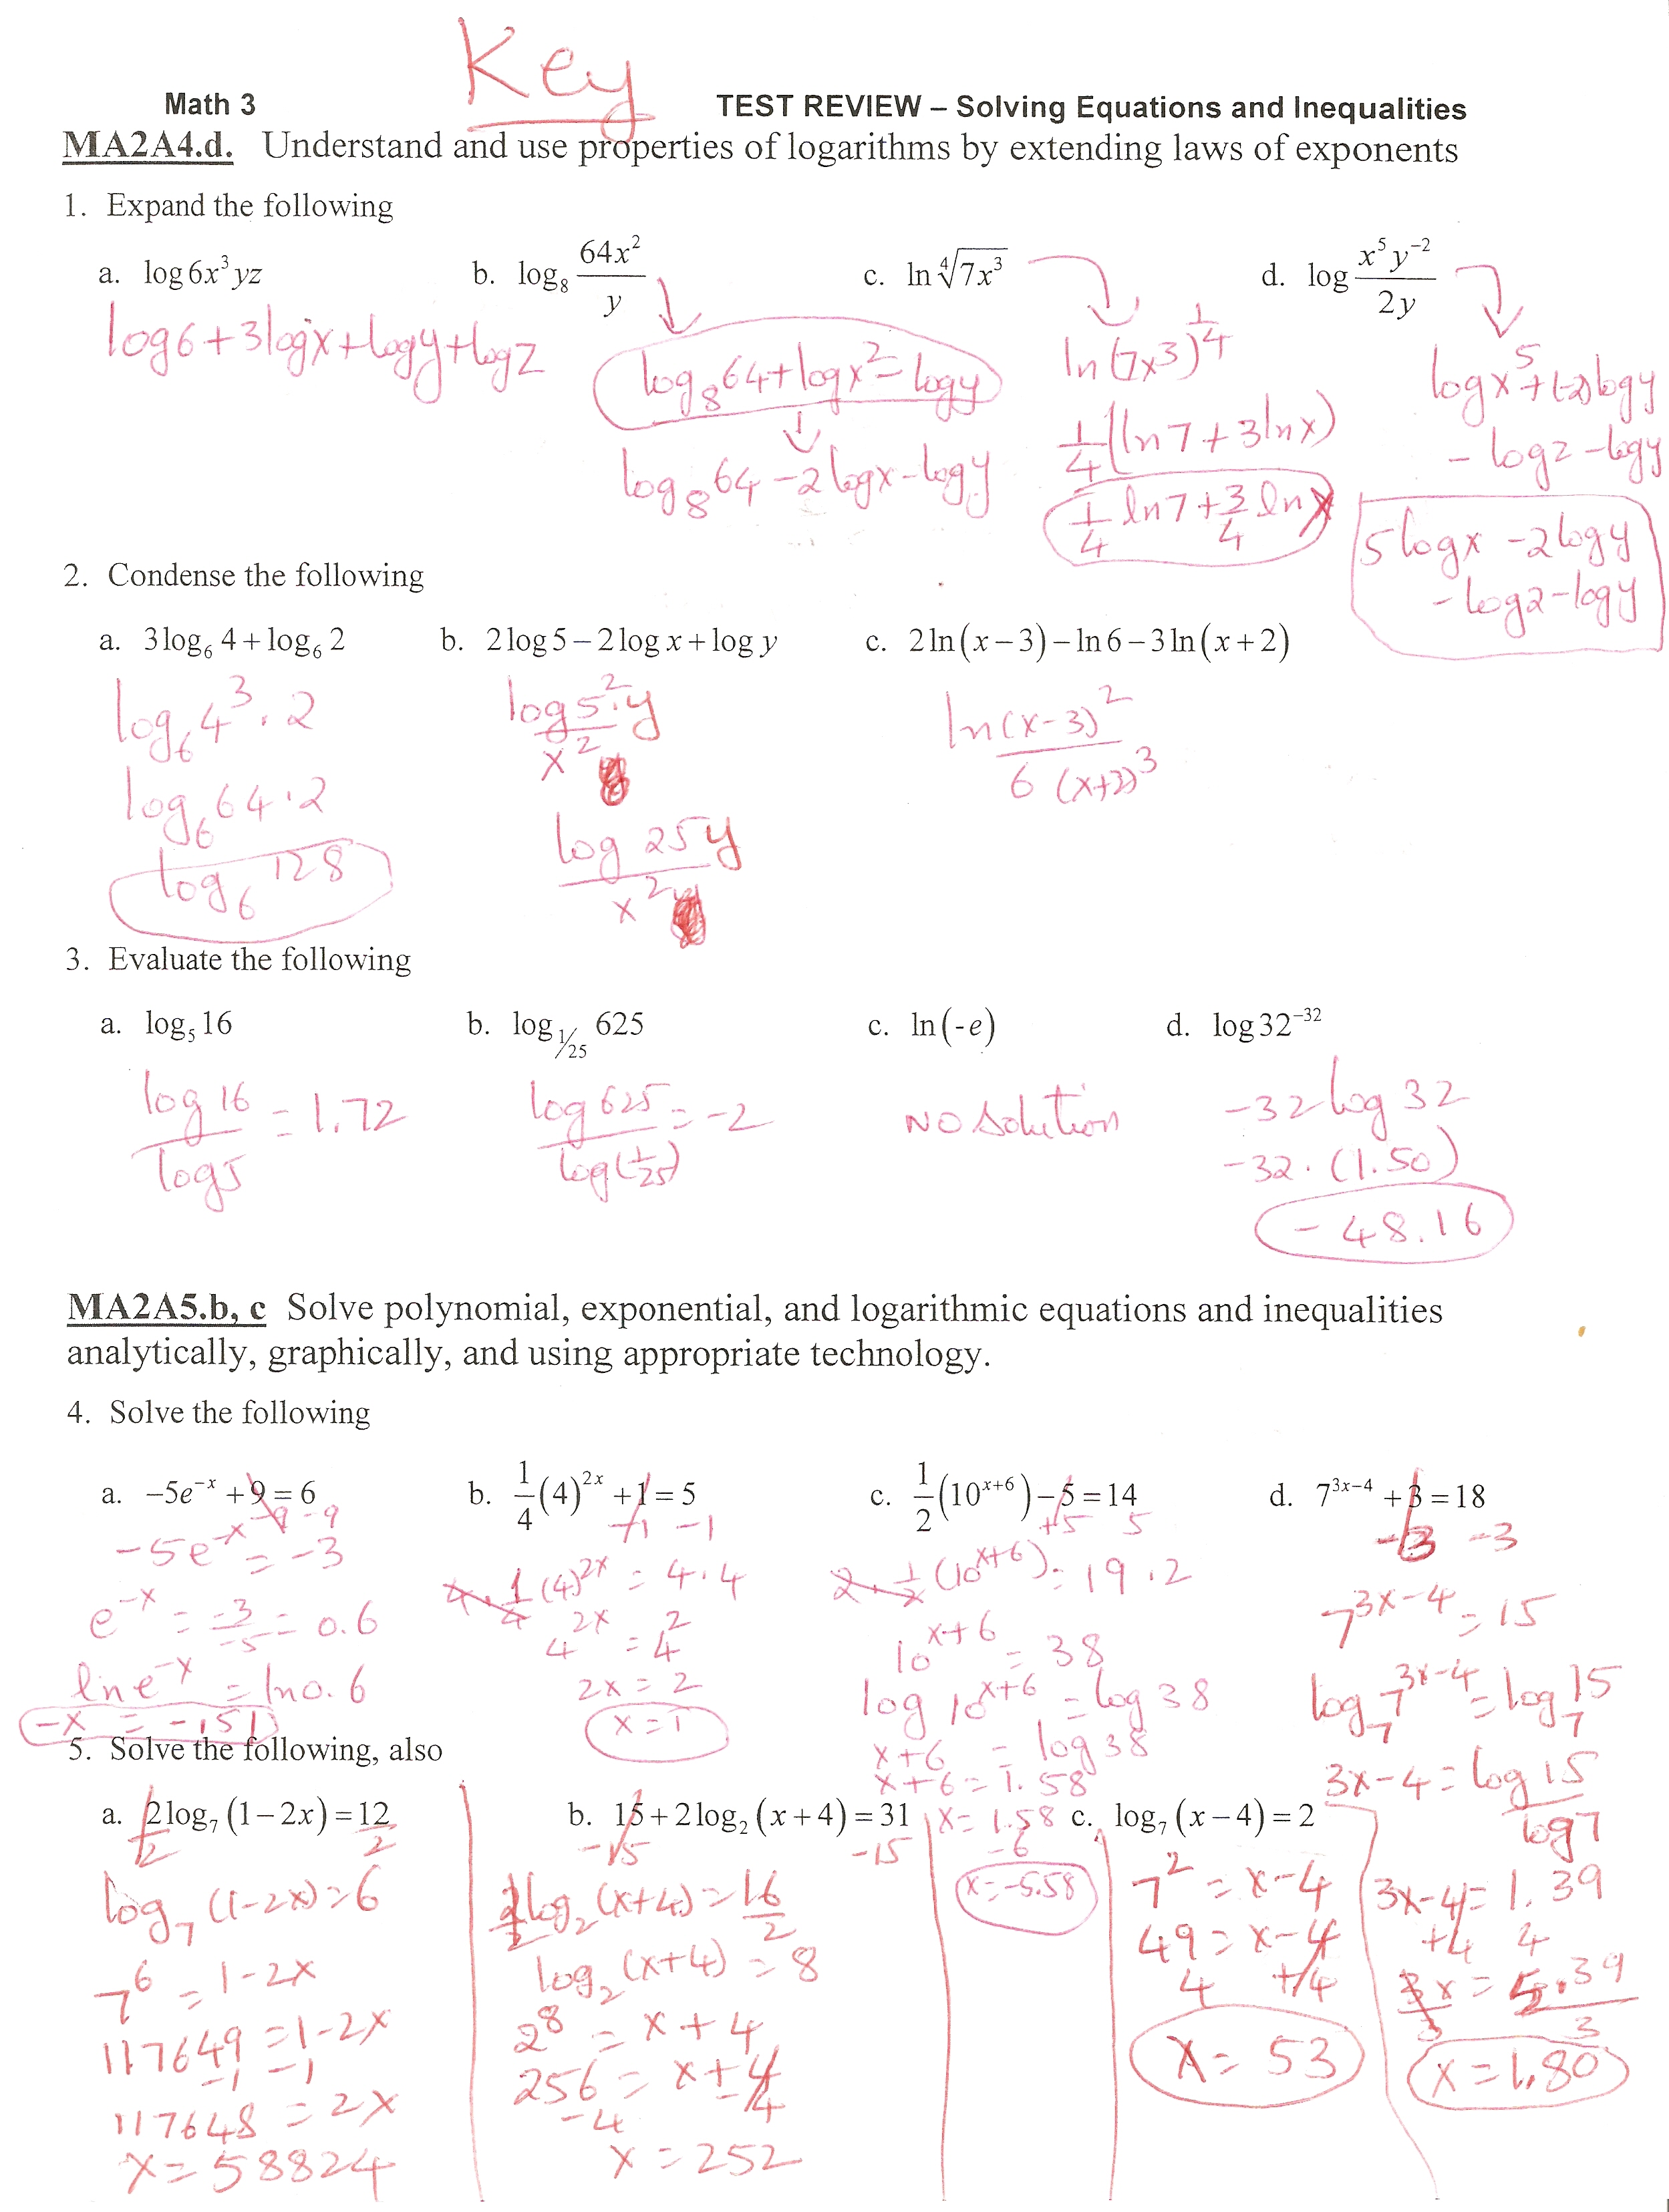 worksheet Properties Of Logarithms Worksheet dr yadavalli march 2011 if you need the key for review then download it from here